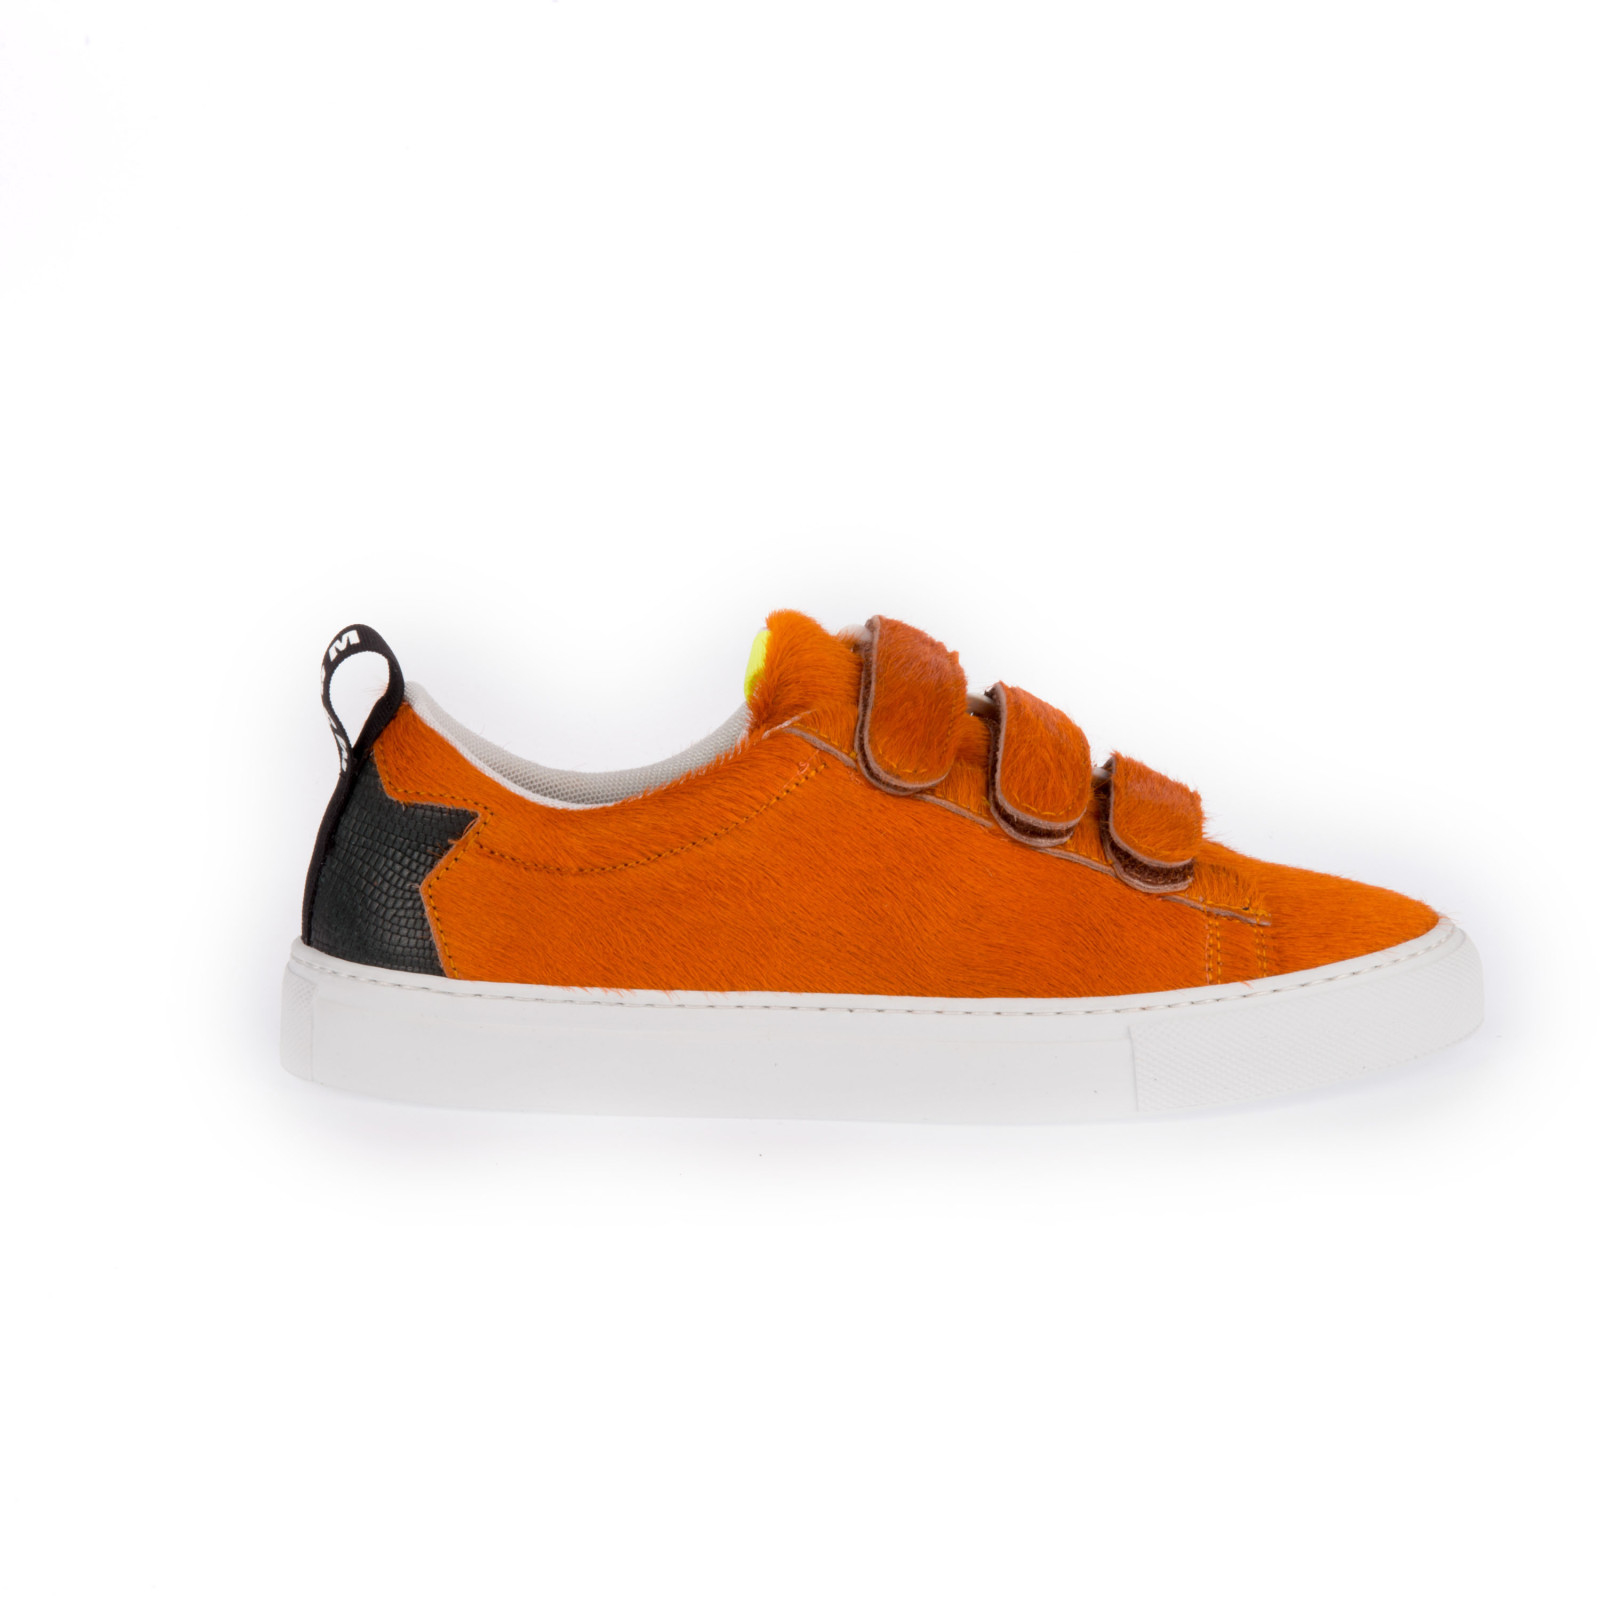 Msgm Leather Sneakers Covered By Orange Calf Fur In Orange